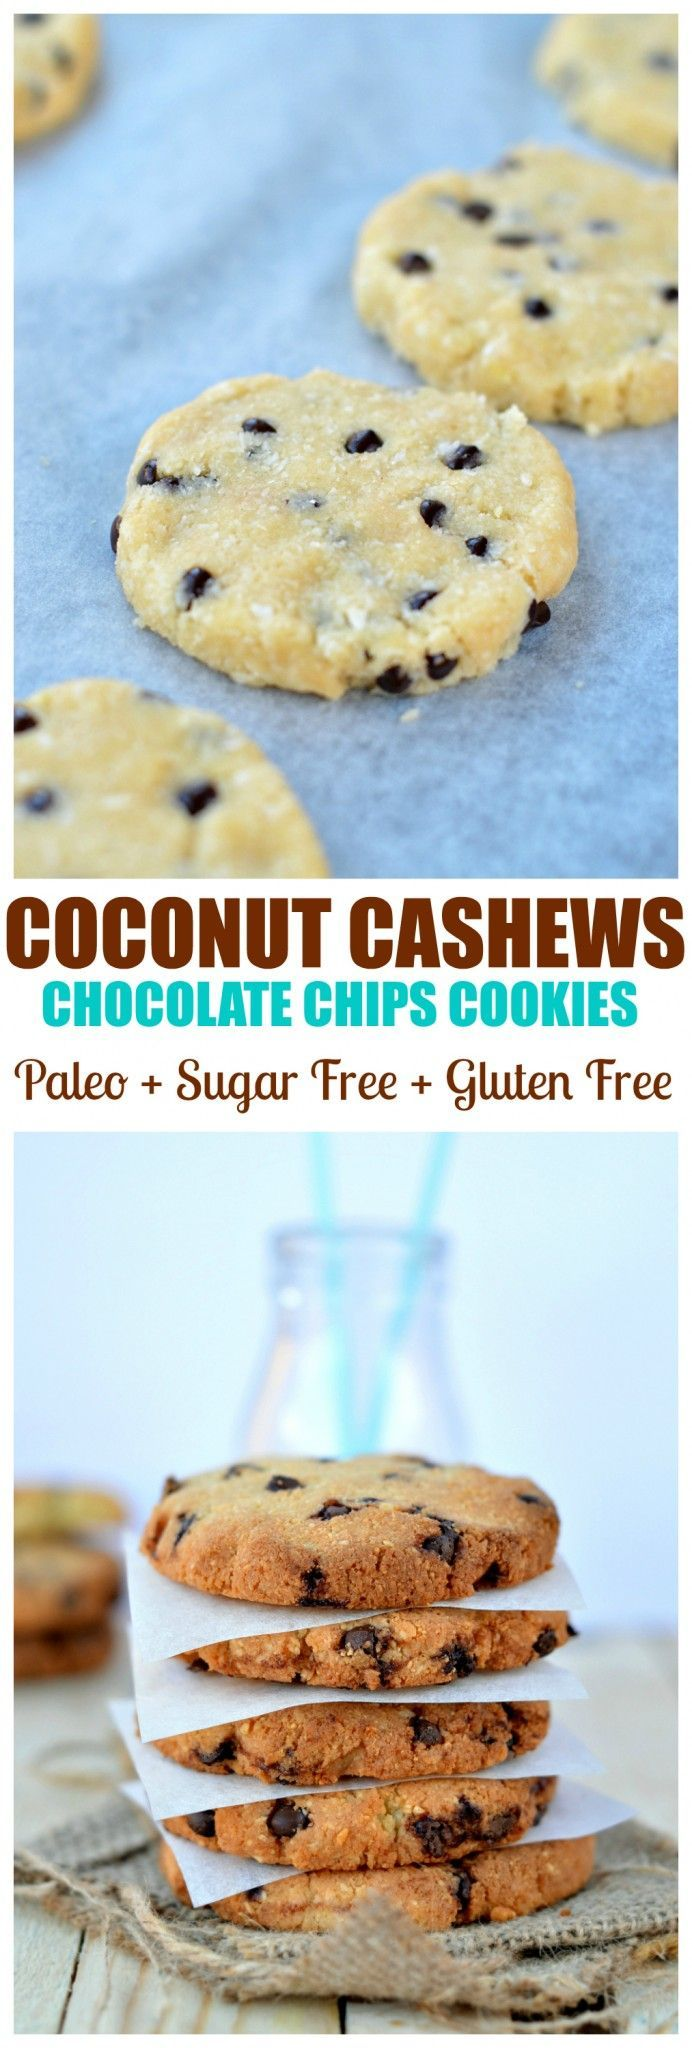 Coconut + Cashews + coconut flour = healthy Paleo cookies. Moist & Crispy outside. They are also Gluten free, dairy free, grain free and sugar free too! -- maybe try with honey instead of stevia